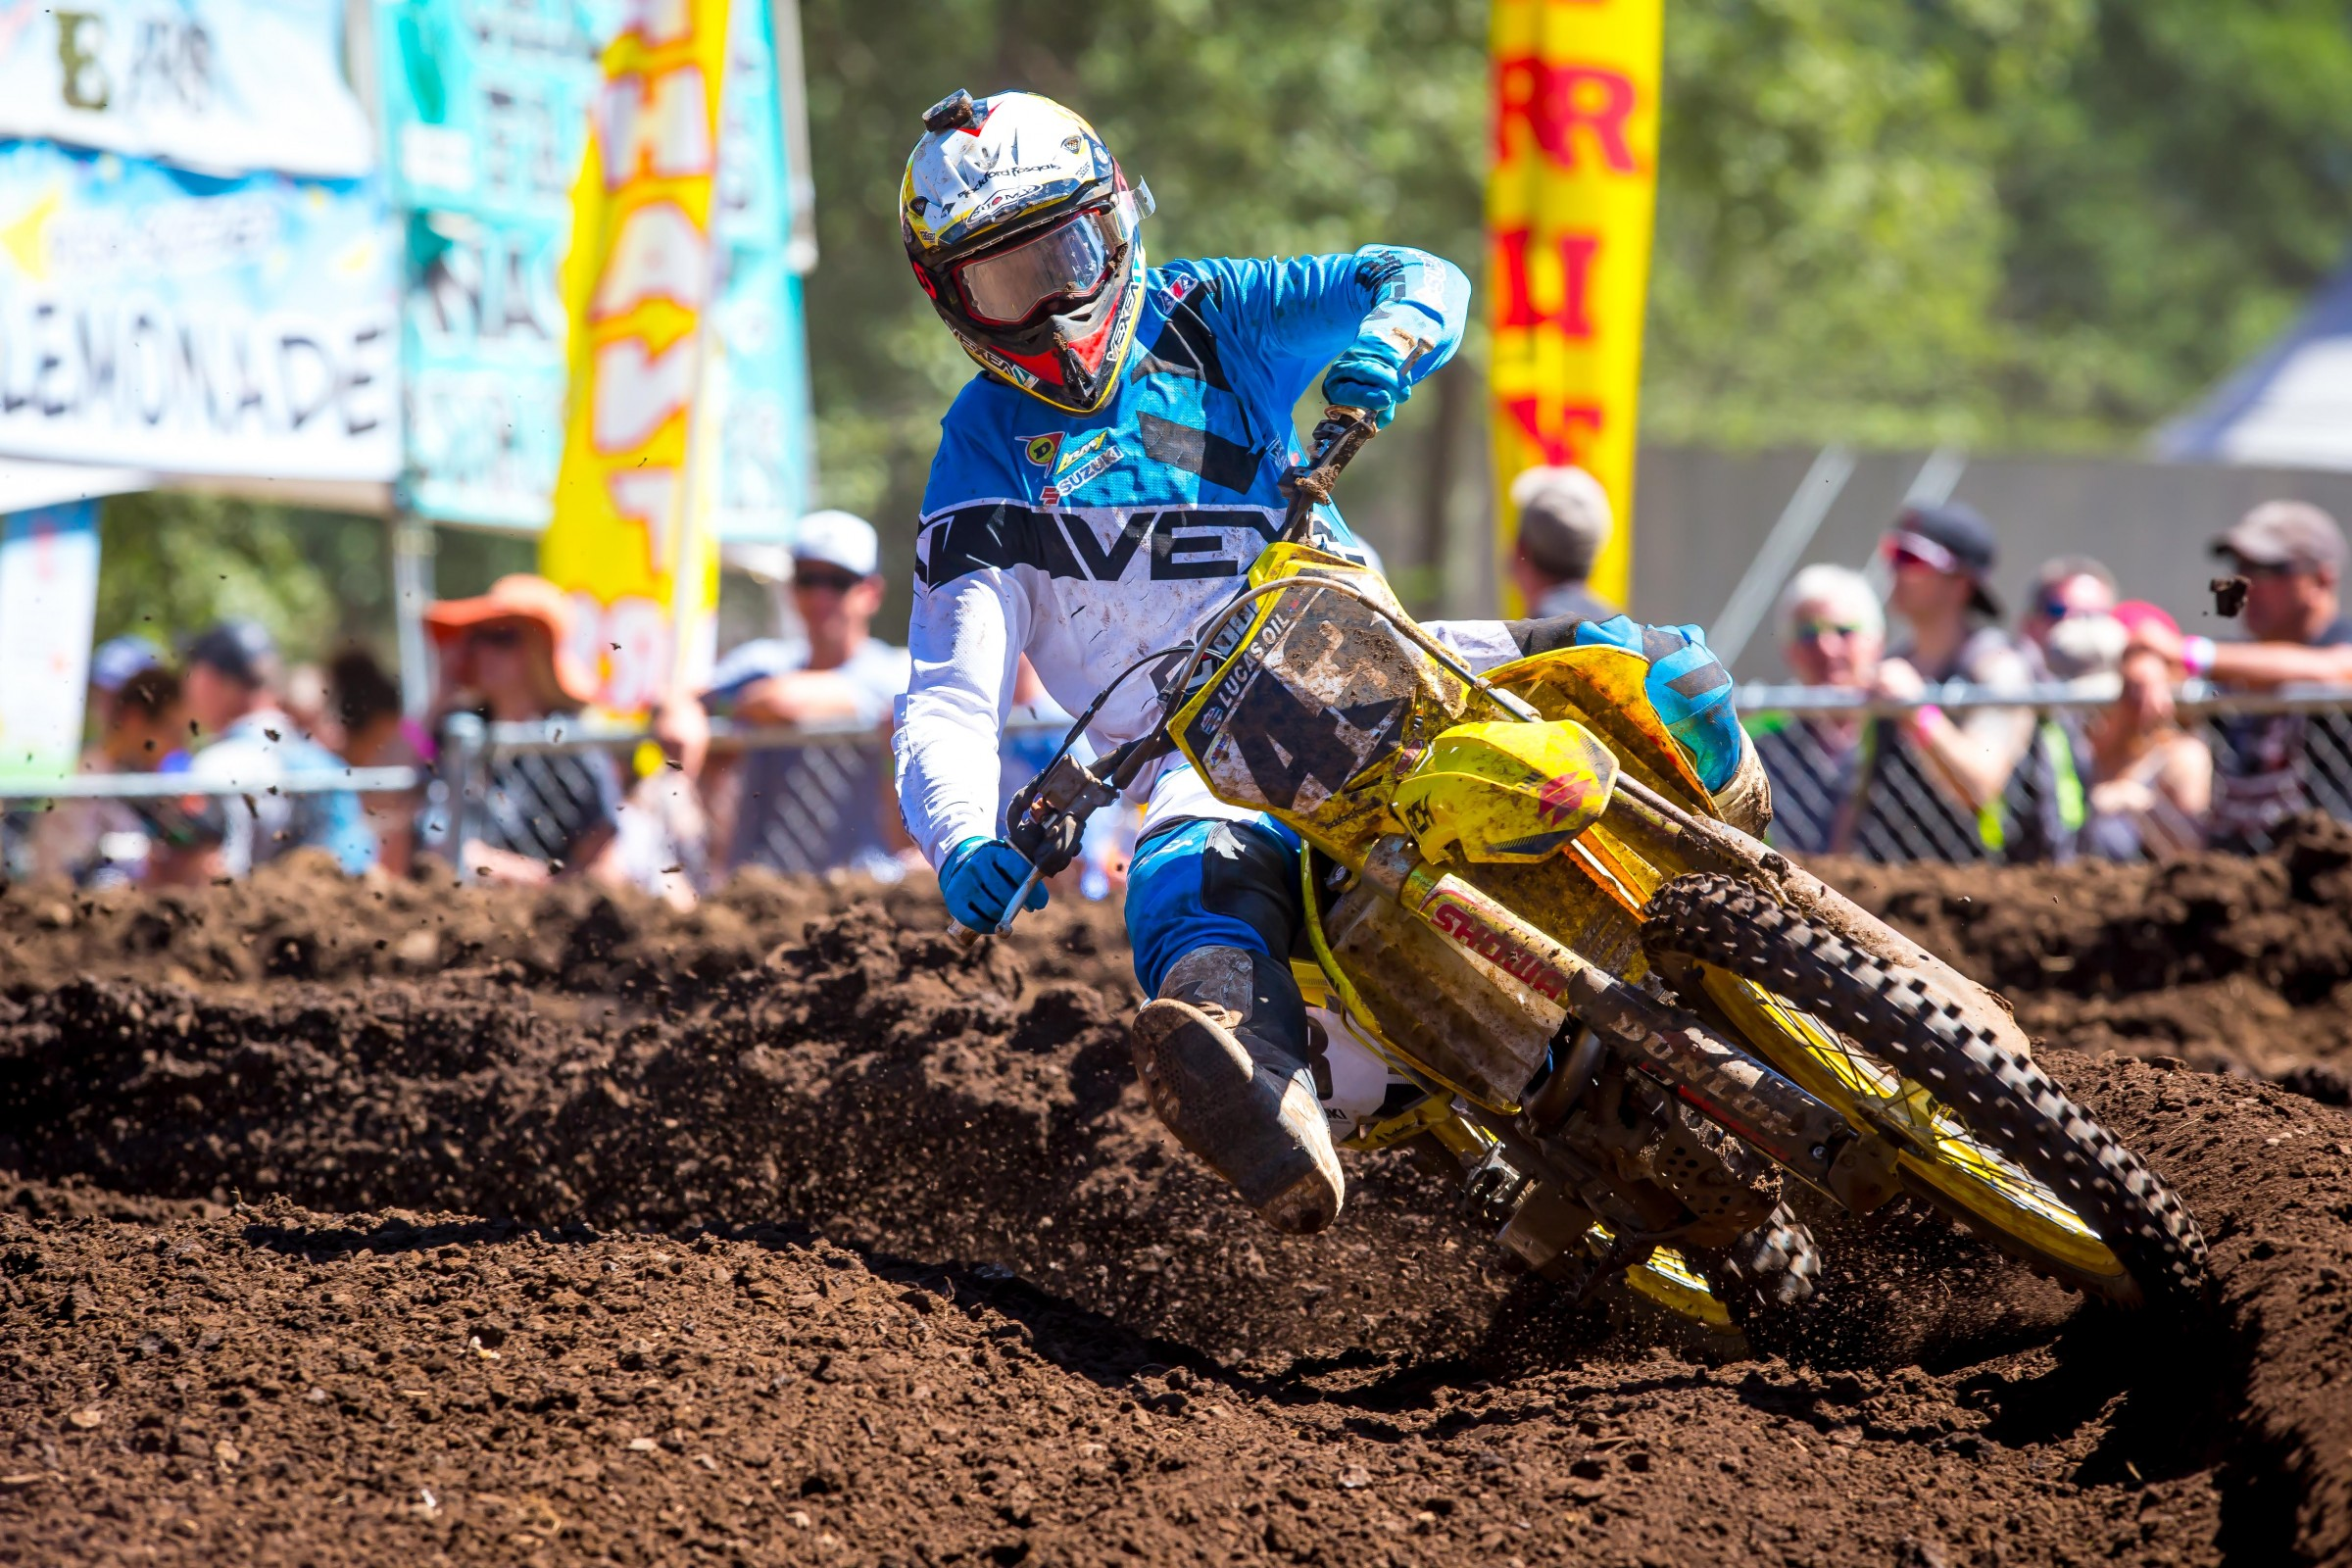 Bisceglia went 10-35 at Washougal for 17th overall.